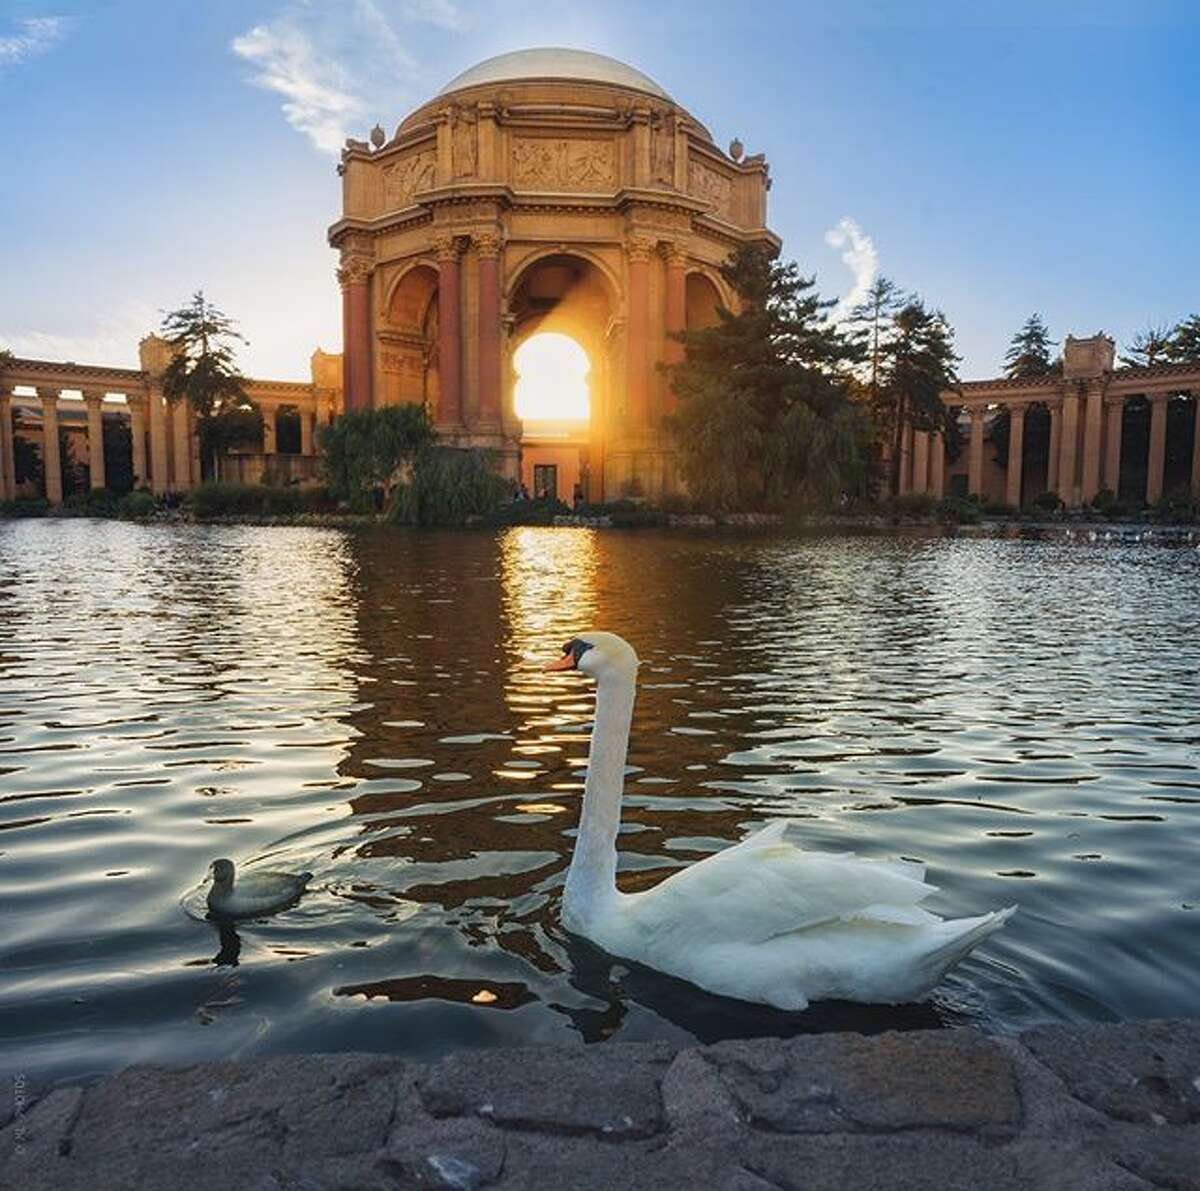 Golden hour with the Palace of Fine Art's lagoon residents by @myfrisco.